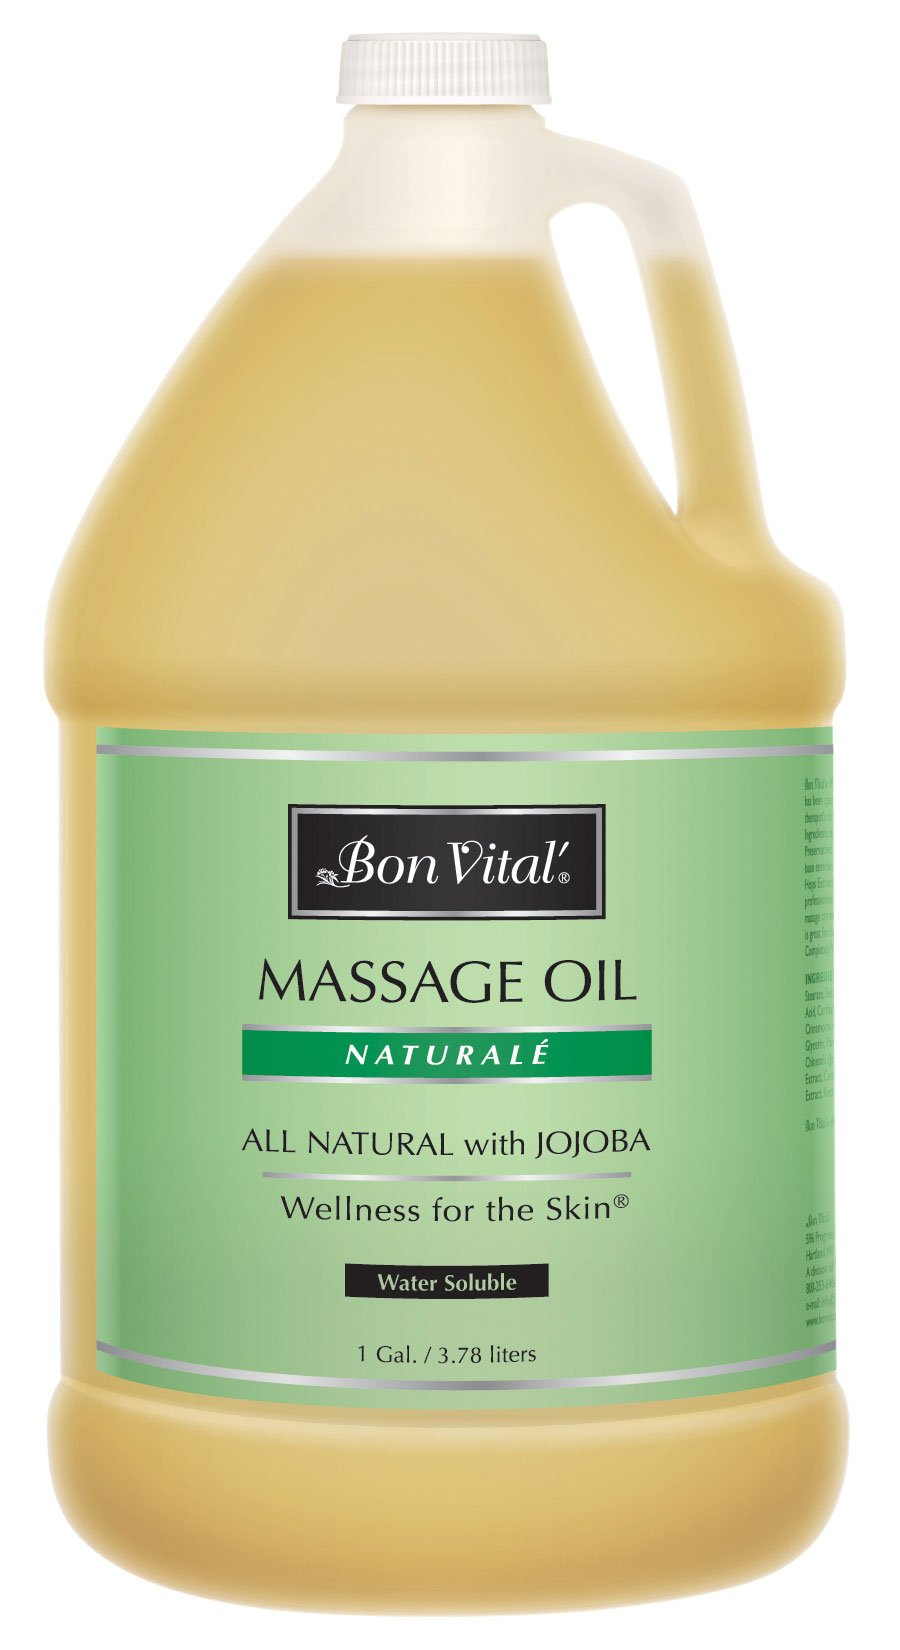 Bon Vital Naturale Massage Oil Made with Natural Ingredients for an Earth-Friendly & Relaxing Massage, Revives and Rehydrates Dry Skin Naturally, with Green Tea Extract for Added Skin Benefits, 1 Gal by Bon Vital